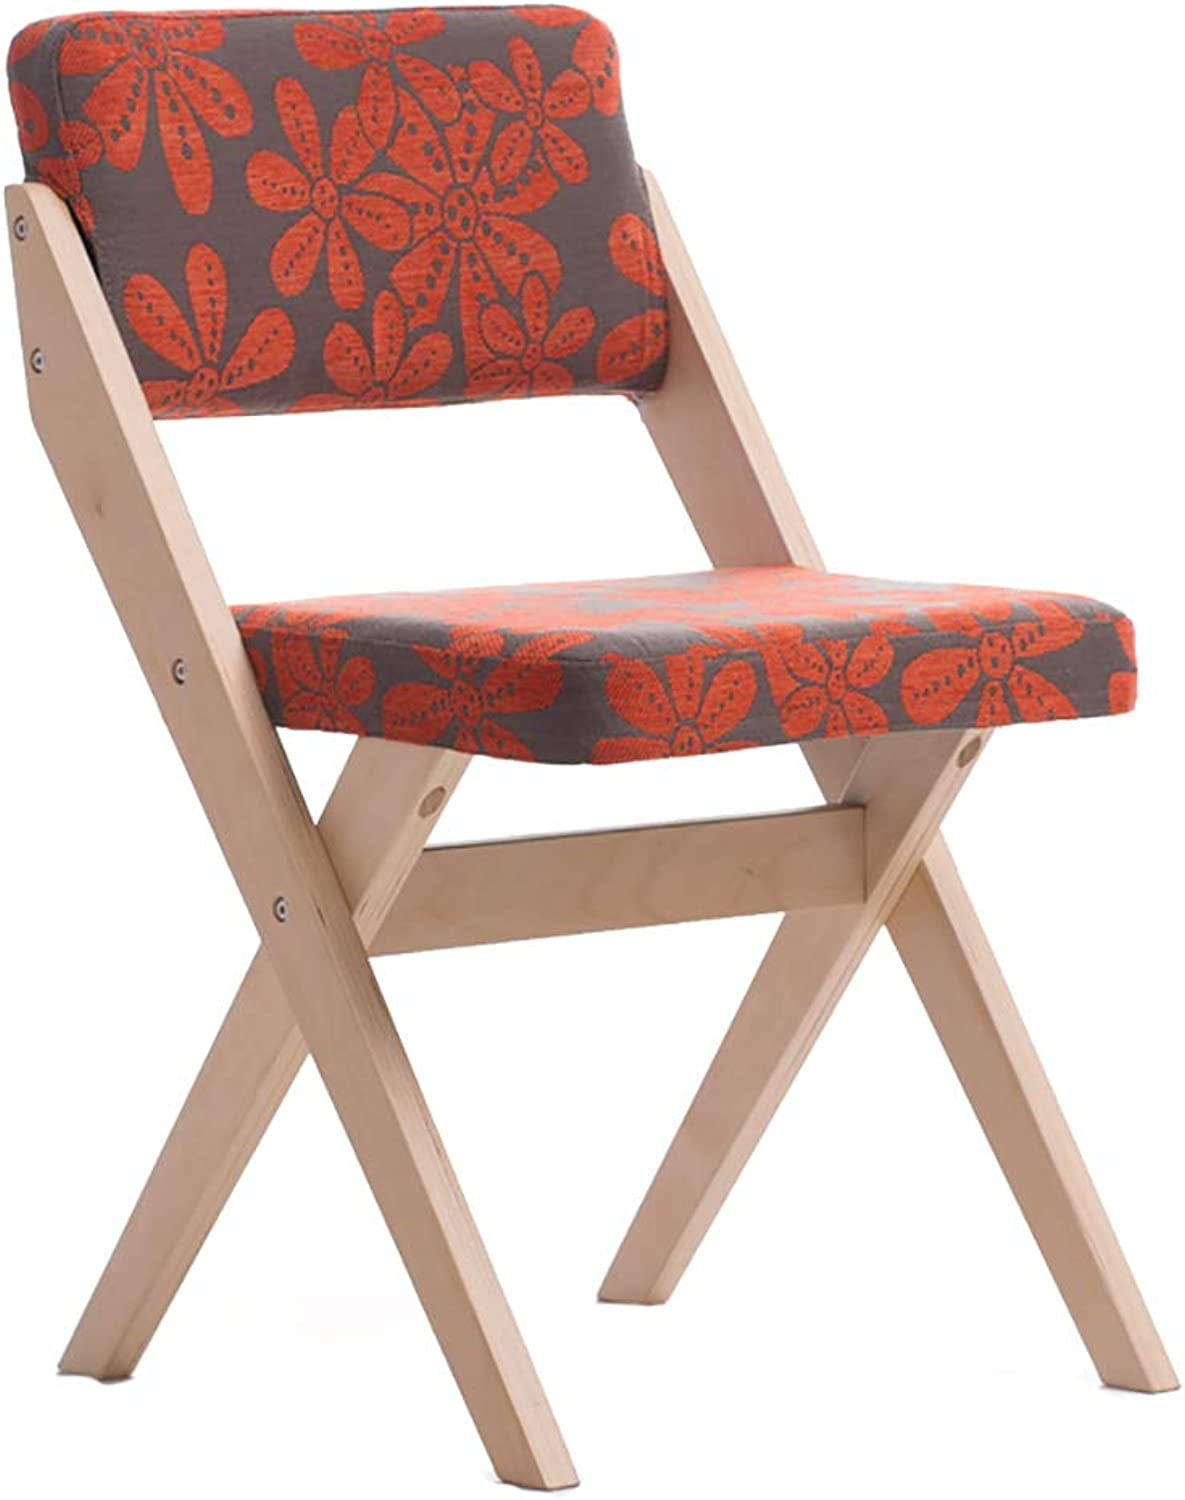 Solid Wood Dining Chair Fabric Chair Home Restaurant Conference Hotel Single Chair (color   C)